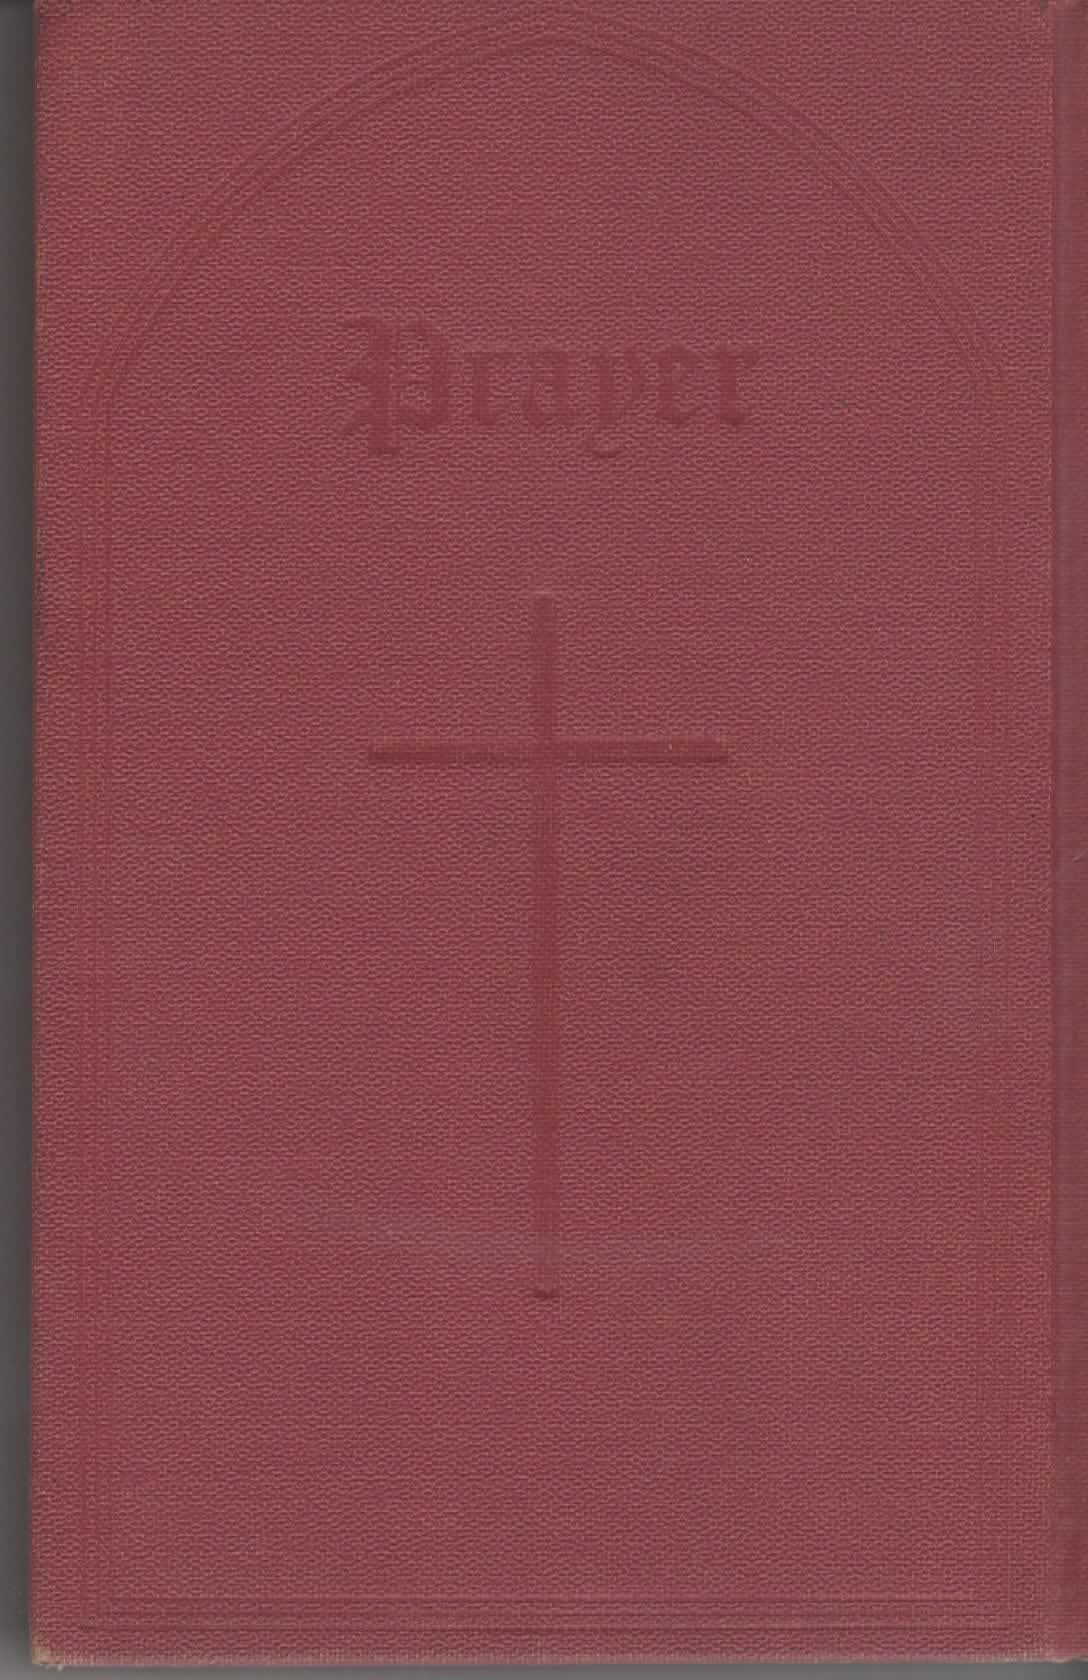 The Book of Common Prayer and Administration of the Sacraments and Other Rites and Ceremonies of the Church According to the Use of the Protestant Episcopal Church in the United State of America